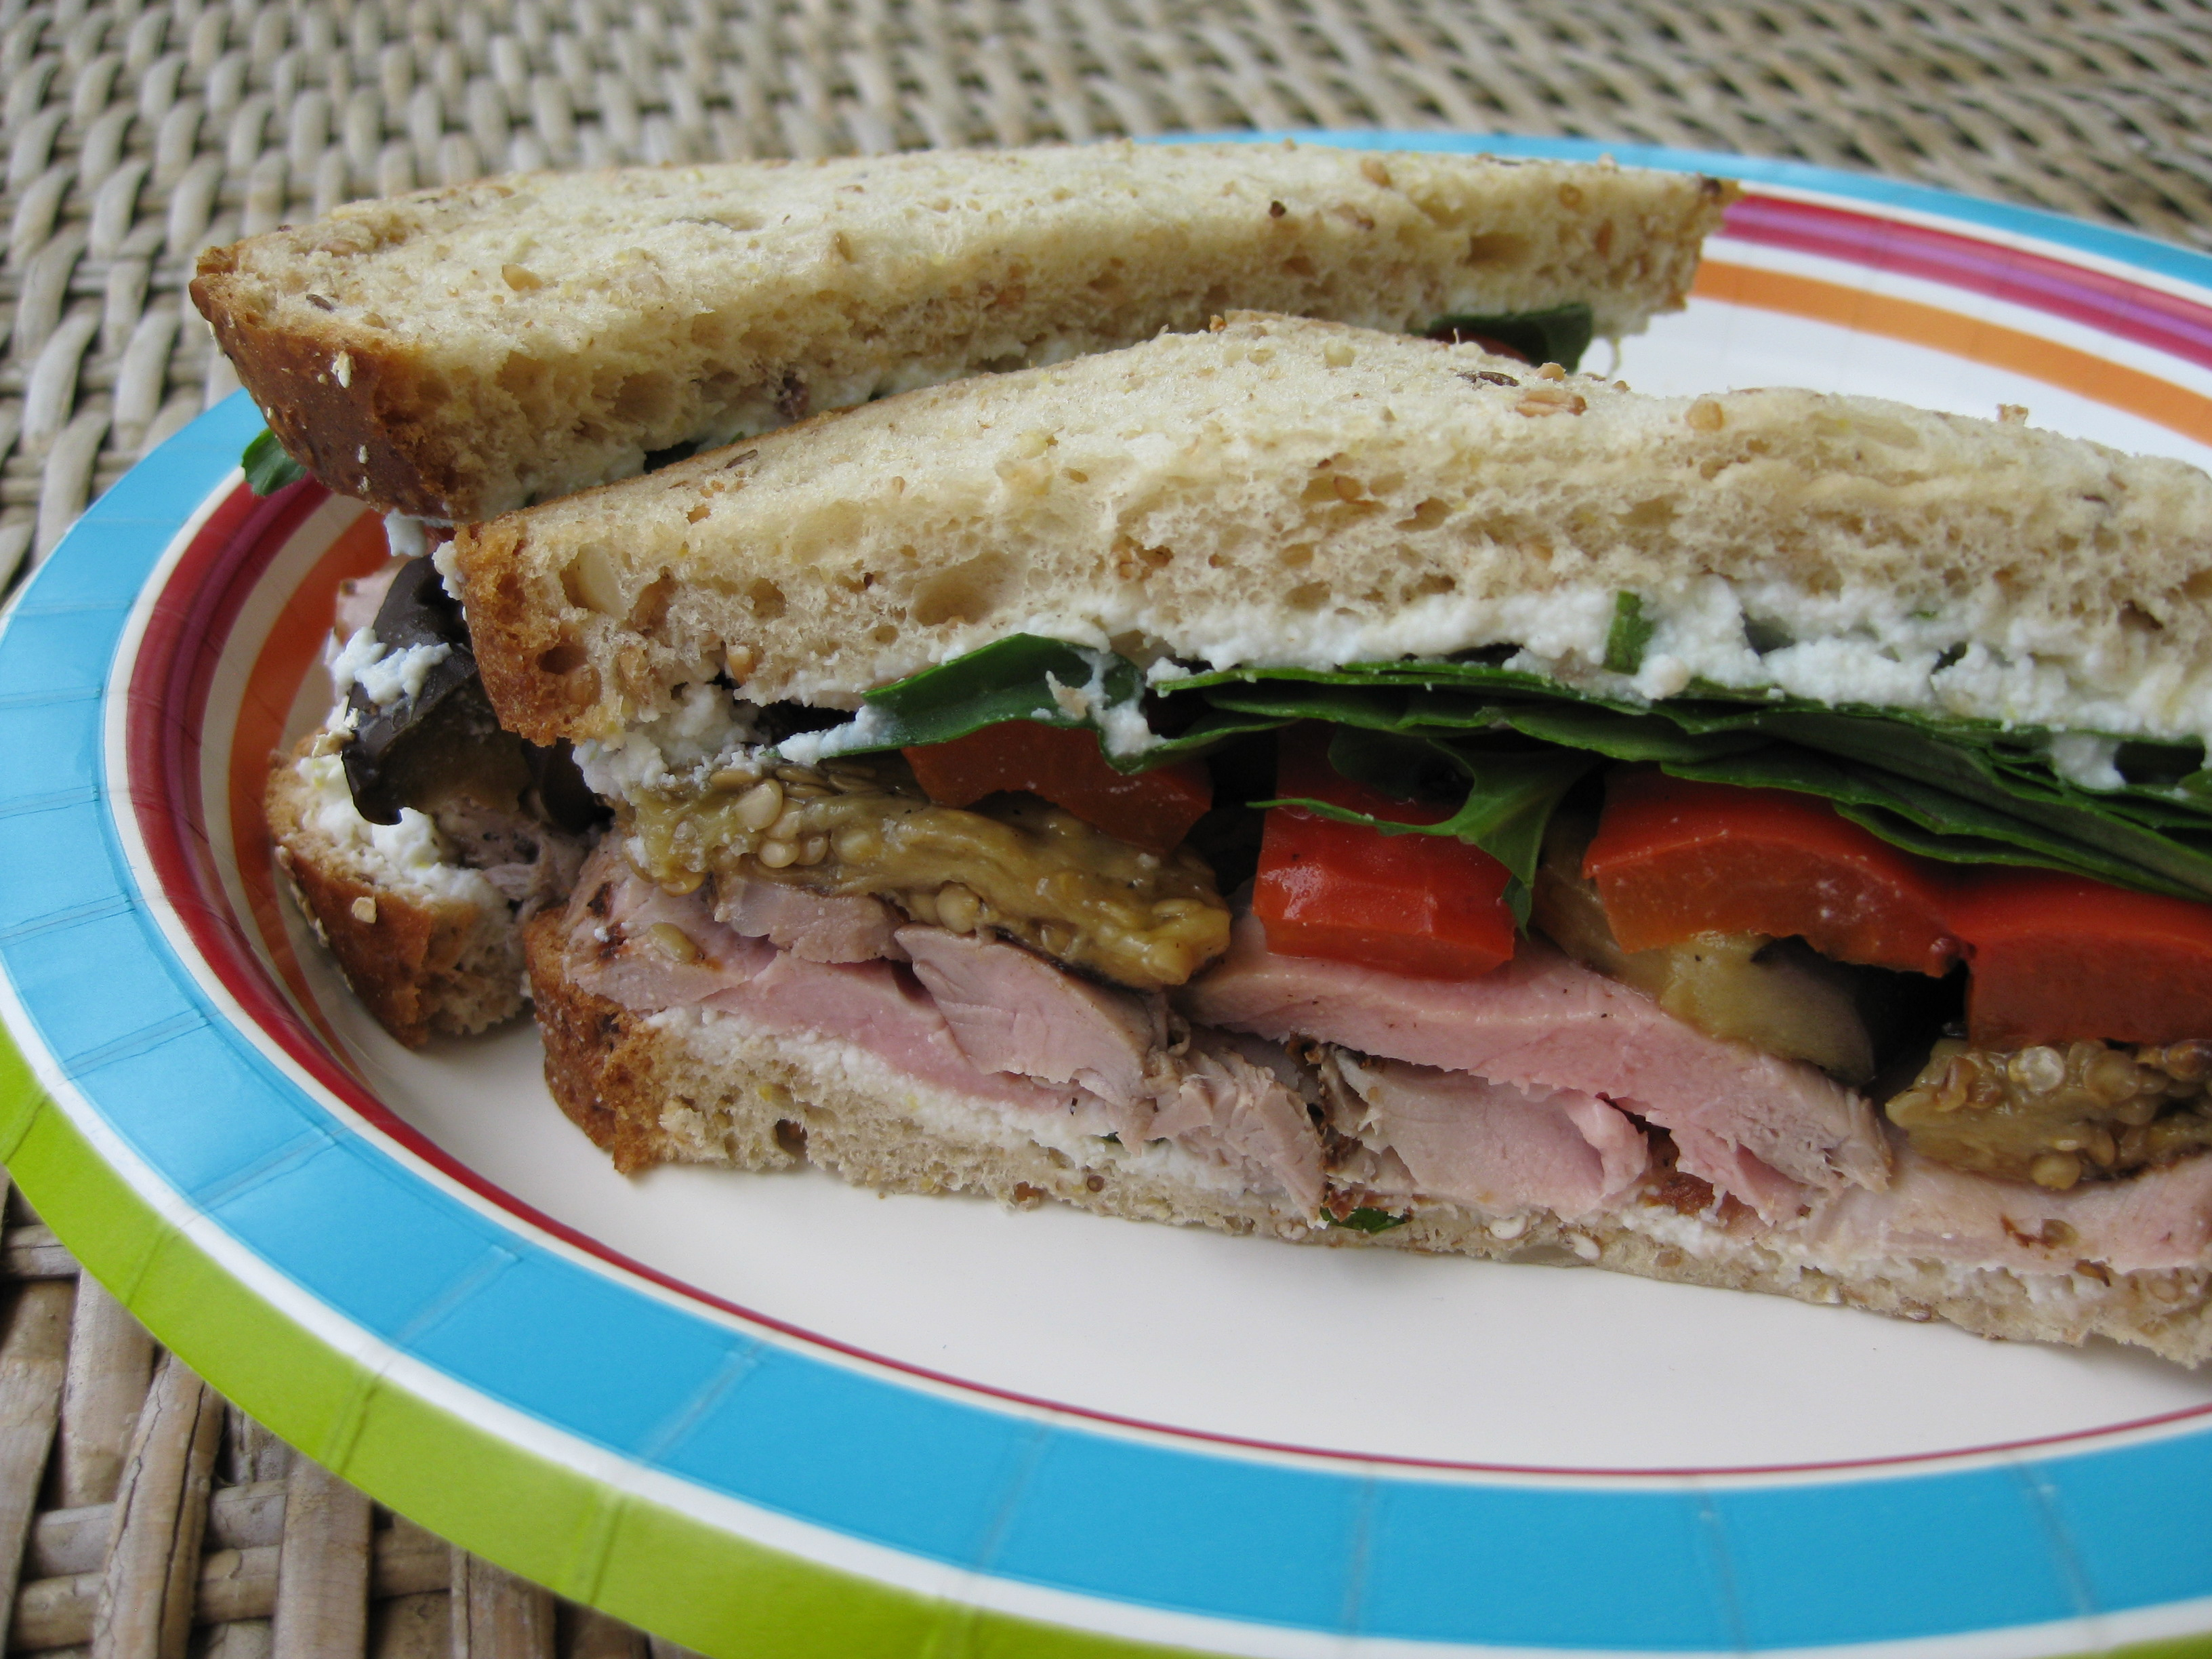 Grilled Pork And Veggies Sammich